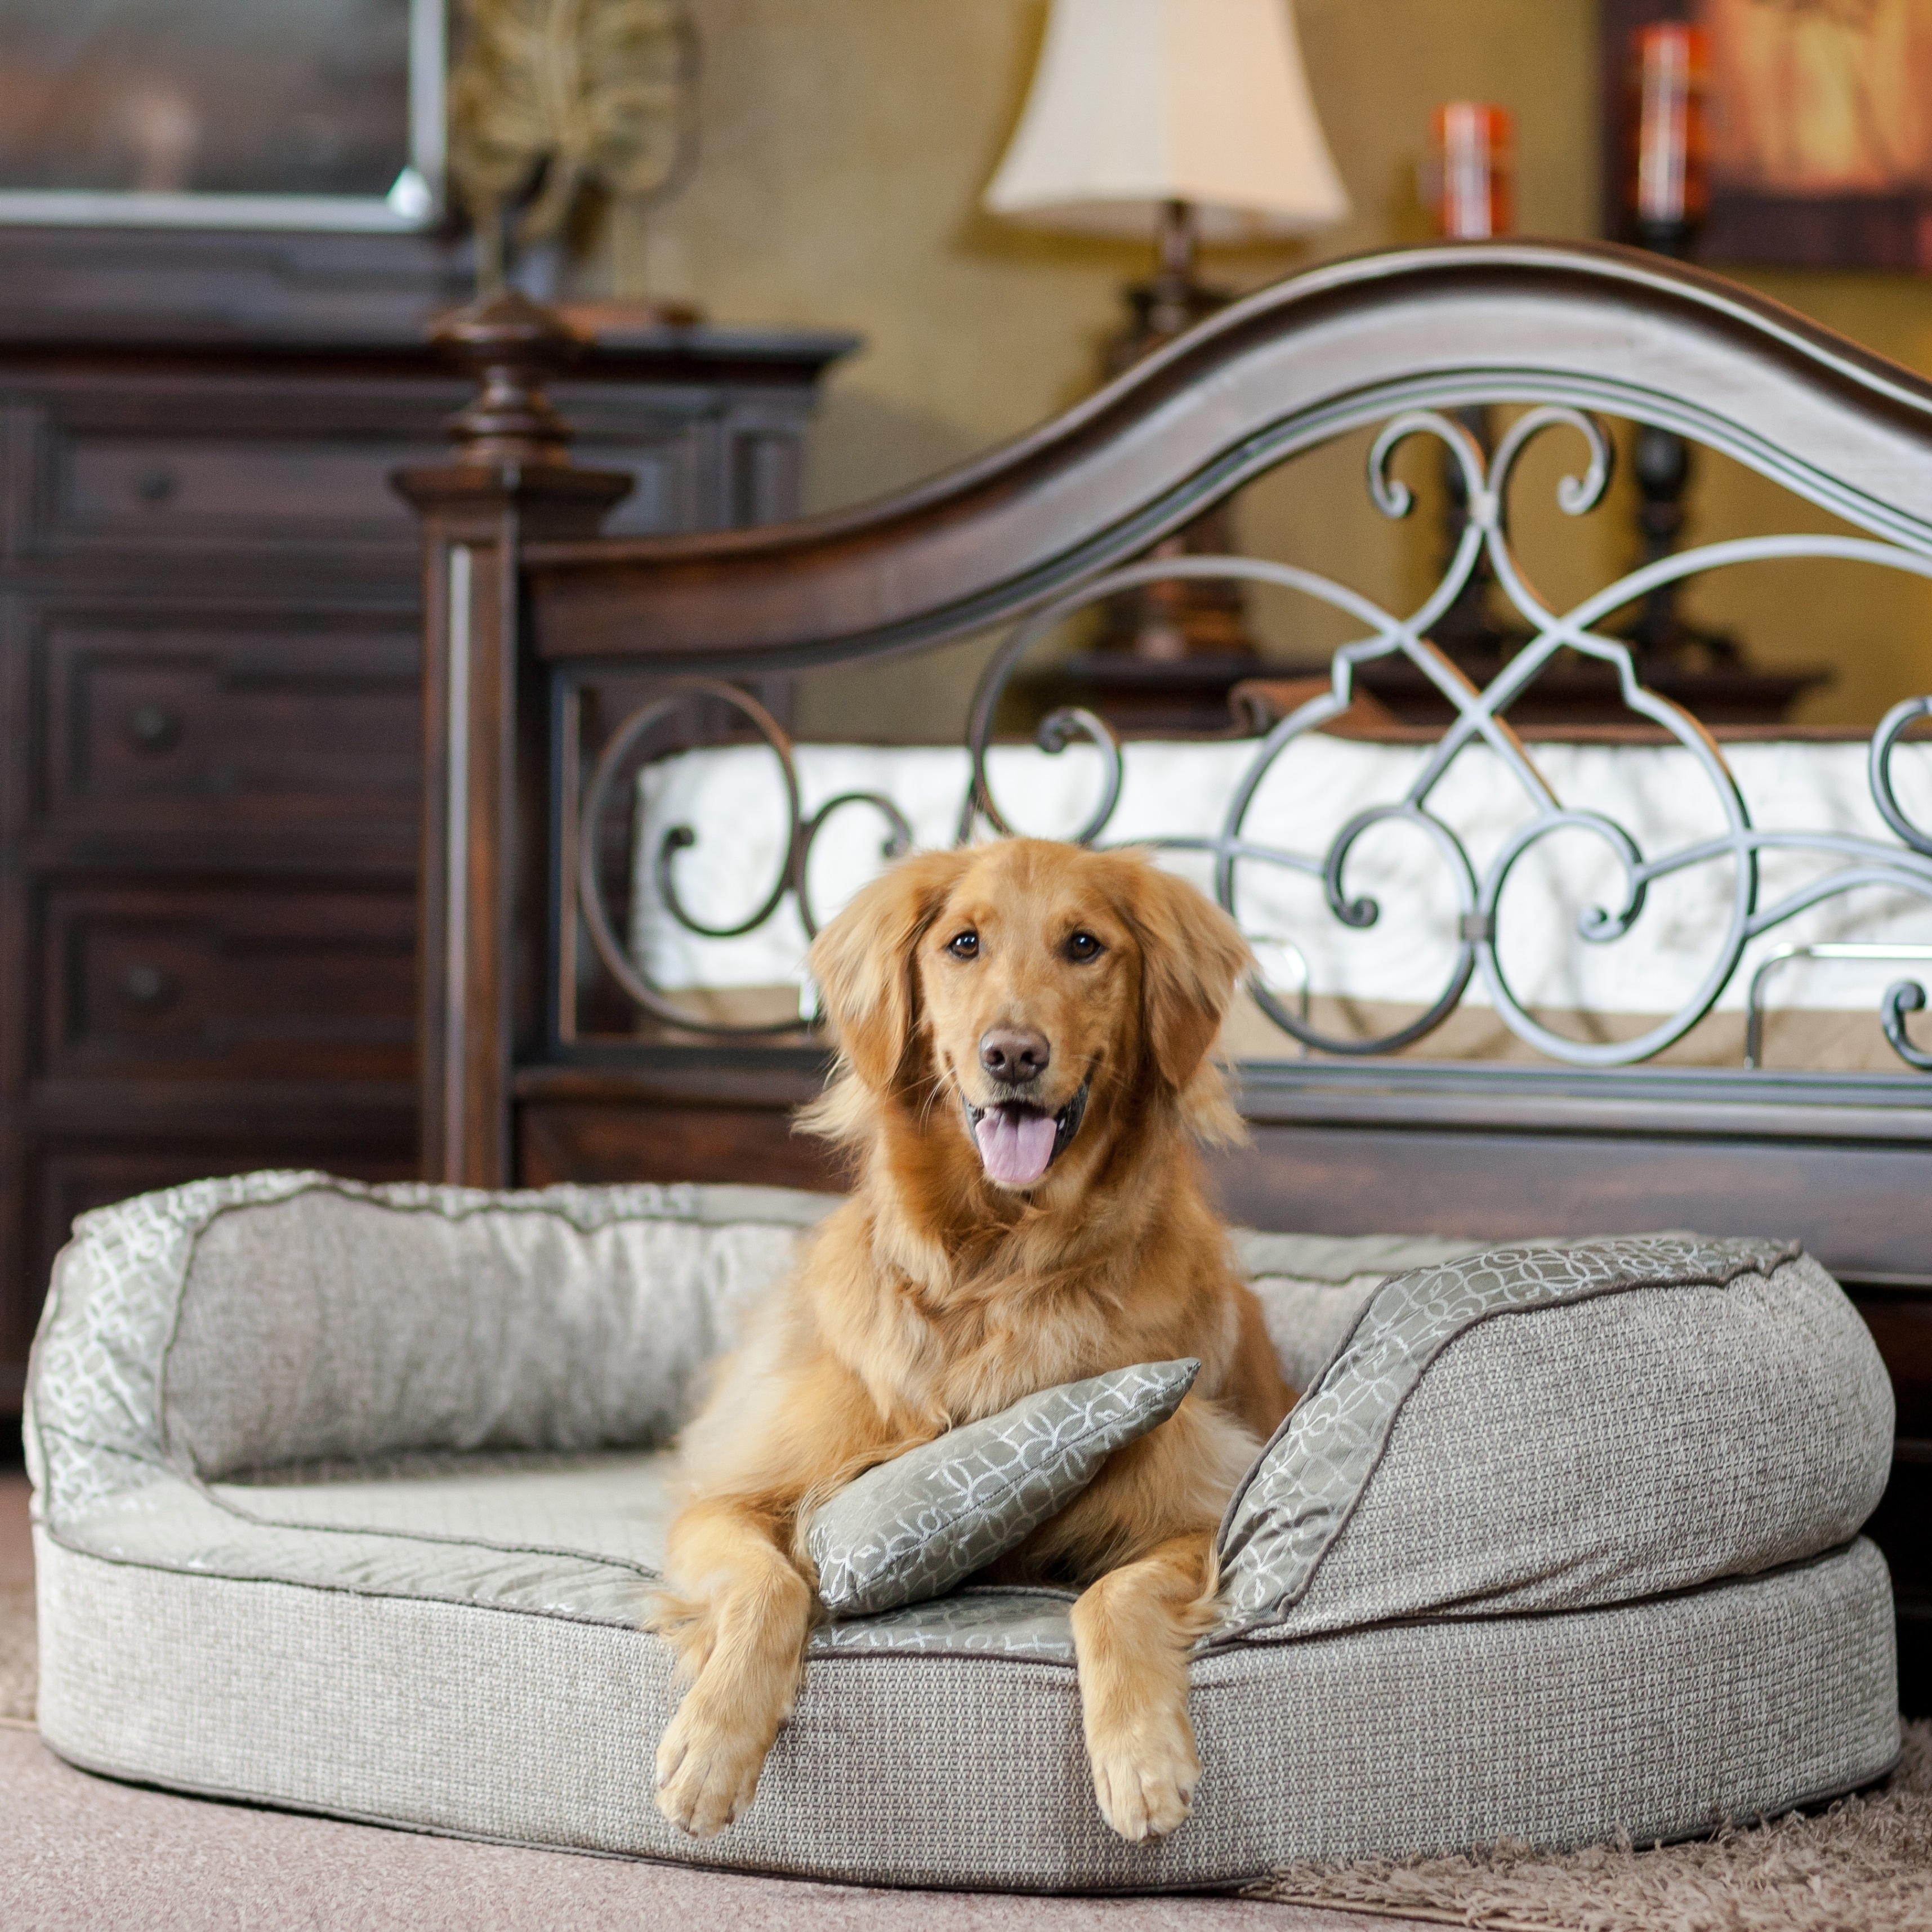 upholstered beds new back product gray bed ii velevet premium kingsthrone antique duchess heart small luxury furniture pet style delux dog